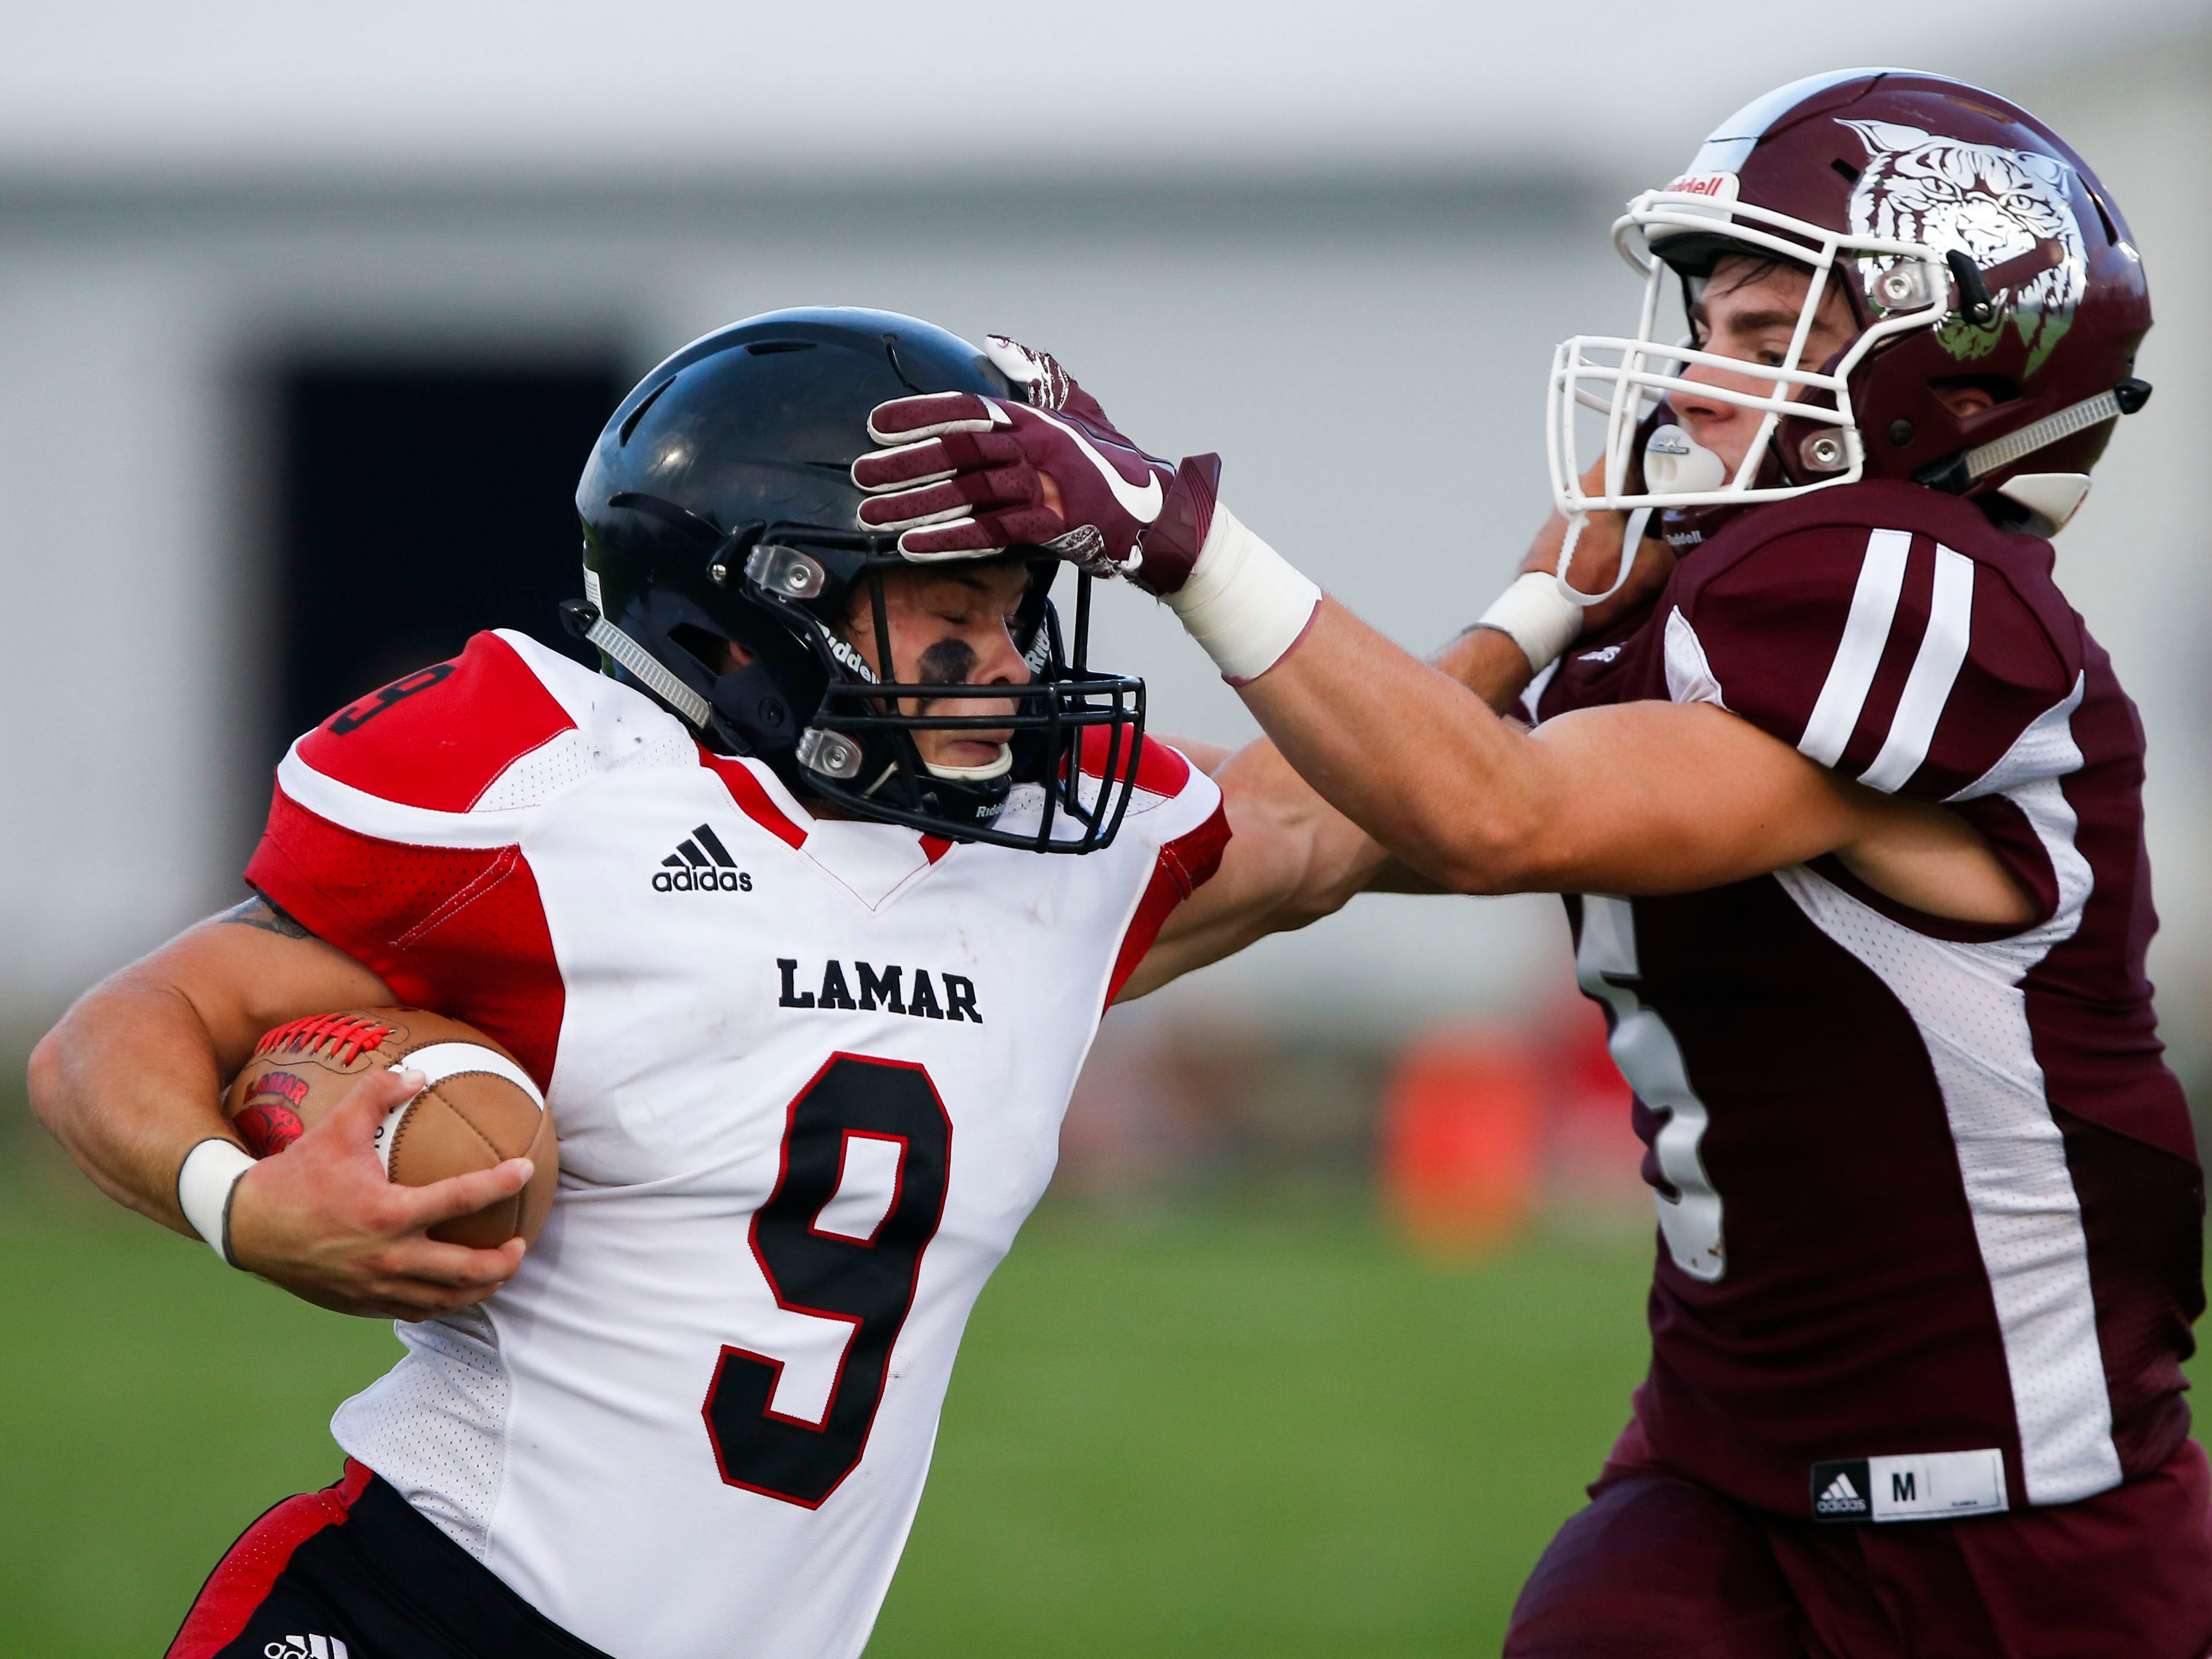 Lamar High School senior Trevor Medlin carries the ball while attempting to deflect a tackle from Logan-Rogersville junior Mckinley Feith during a game at Logan-Rogersville on Friday, Aug. 24, 2018.